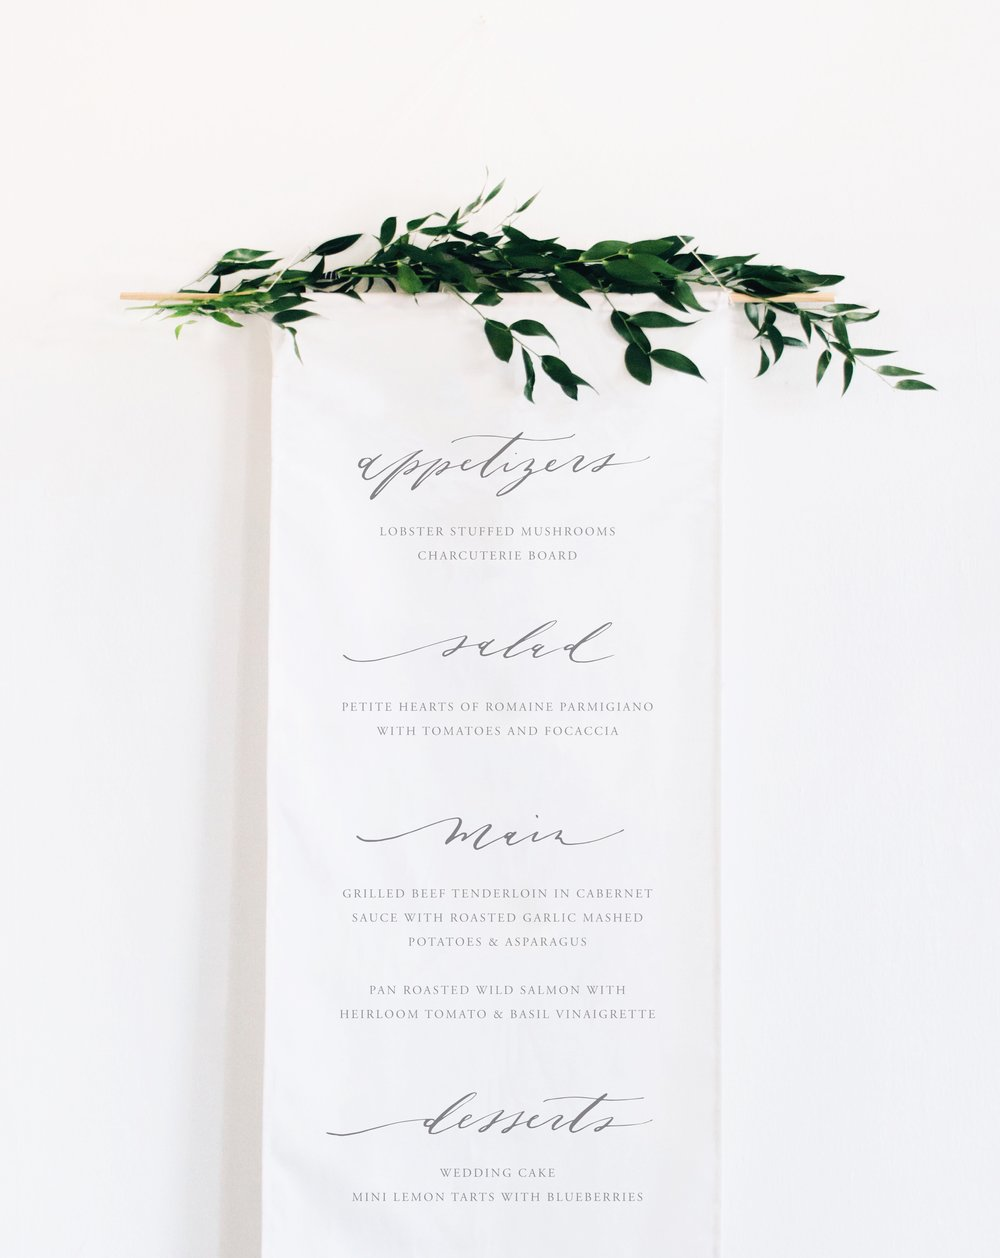 wedding-menu-quinn-luu.JPG